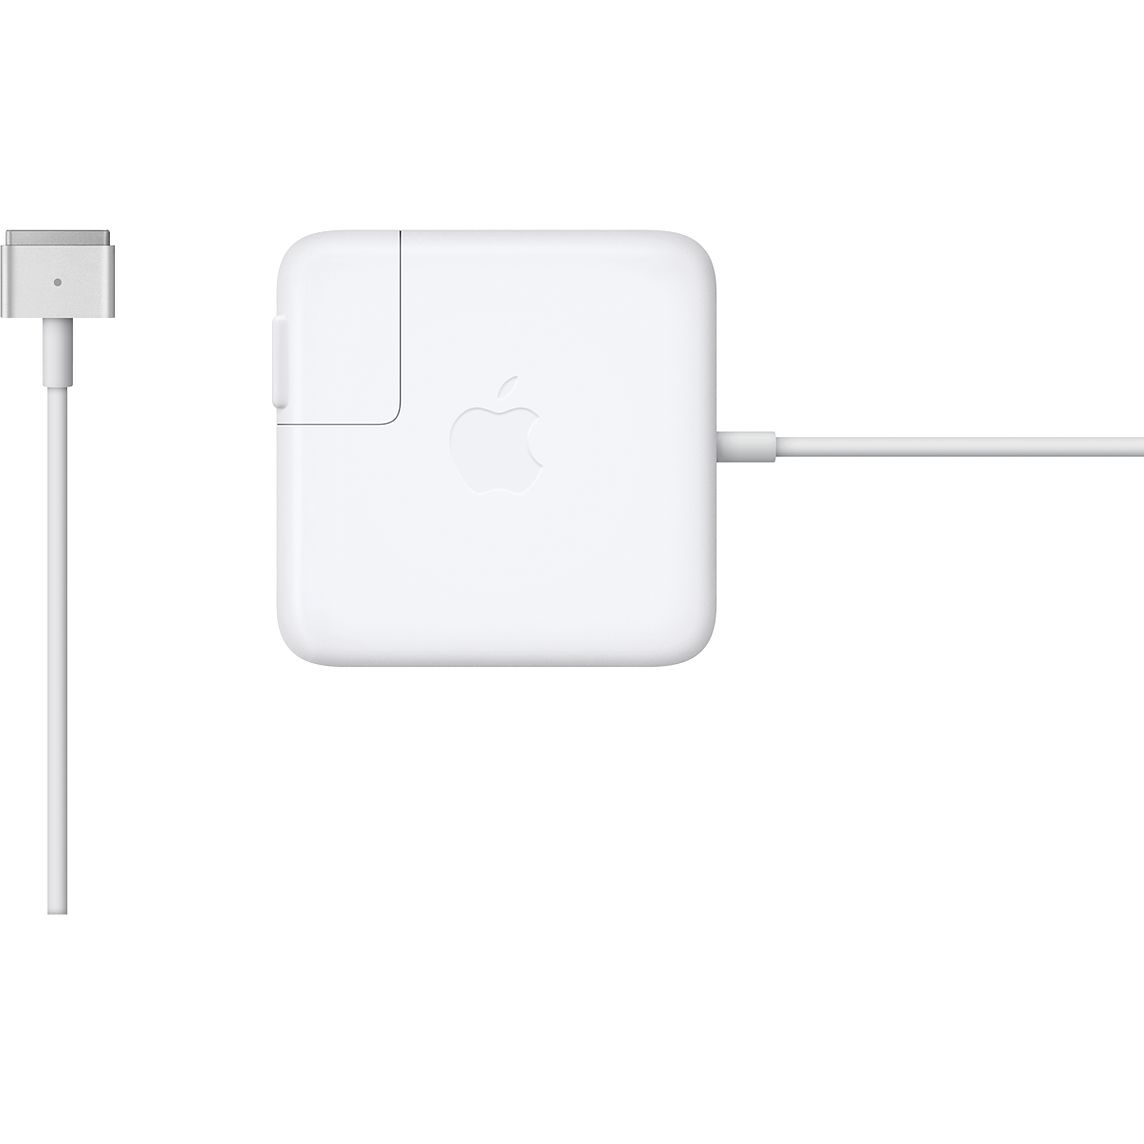 Magsafe 2 Charger Replacement - OEM